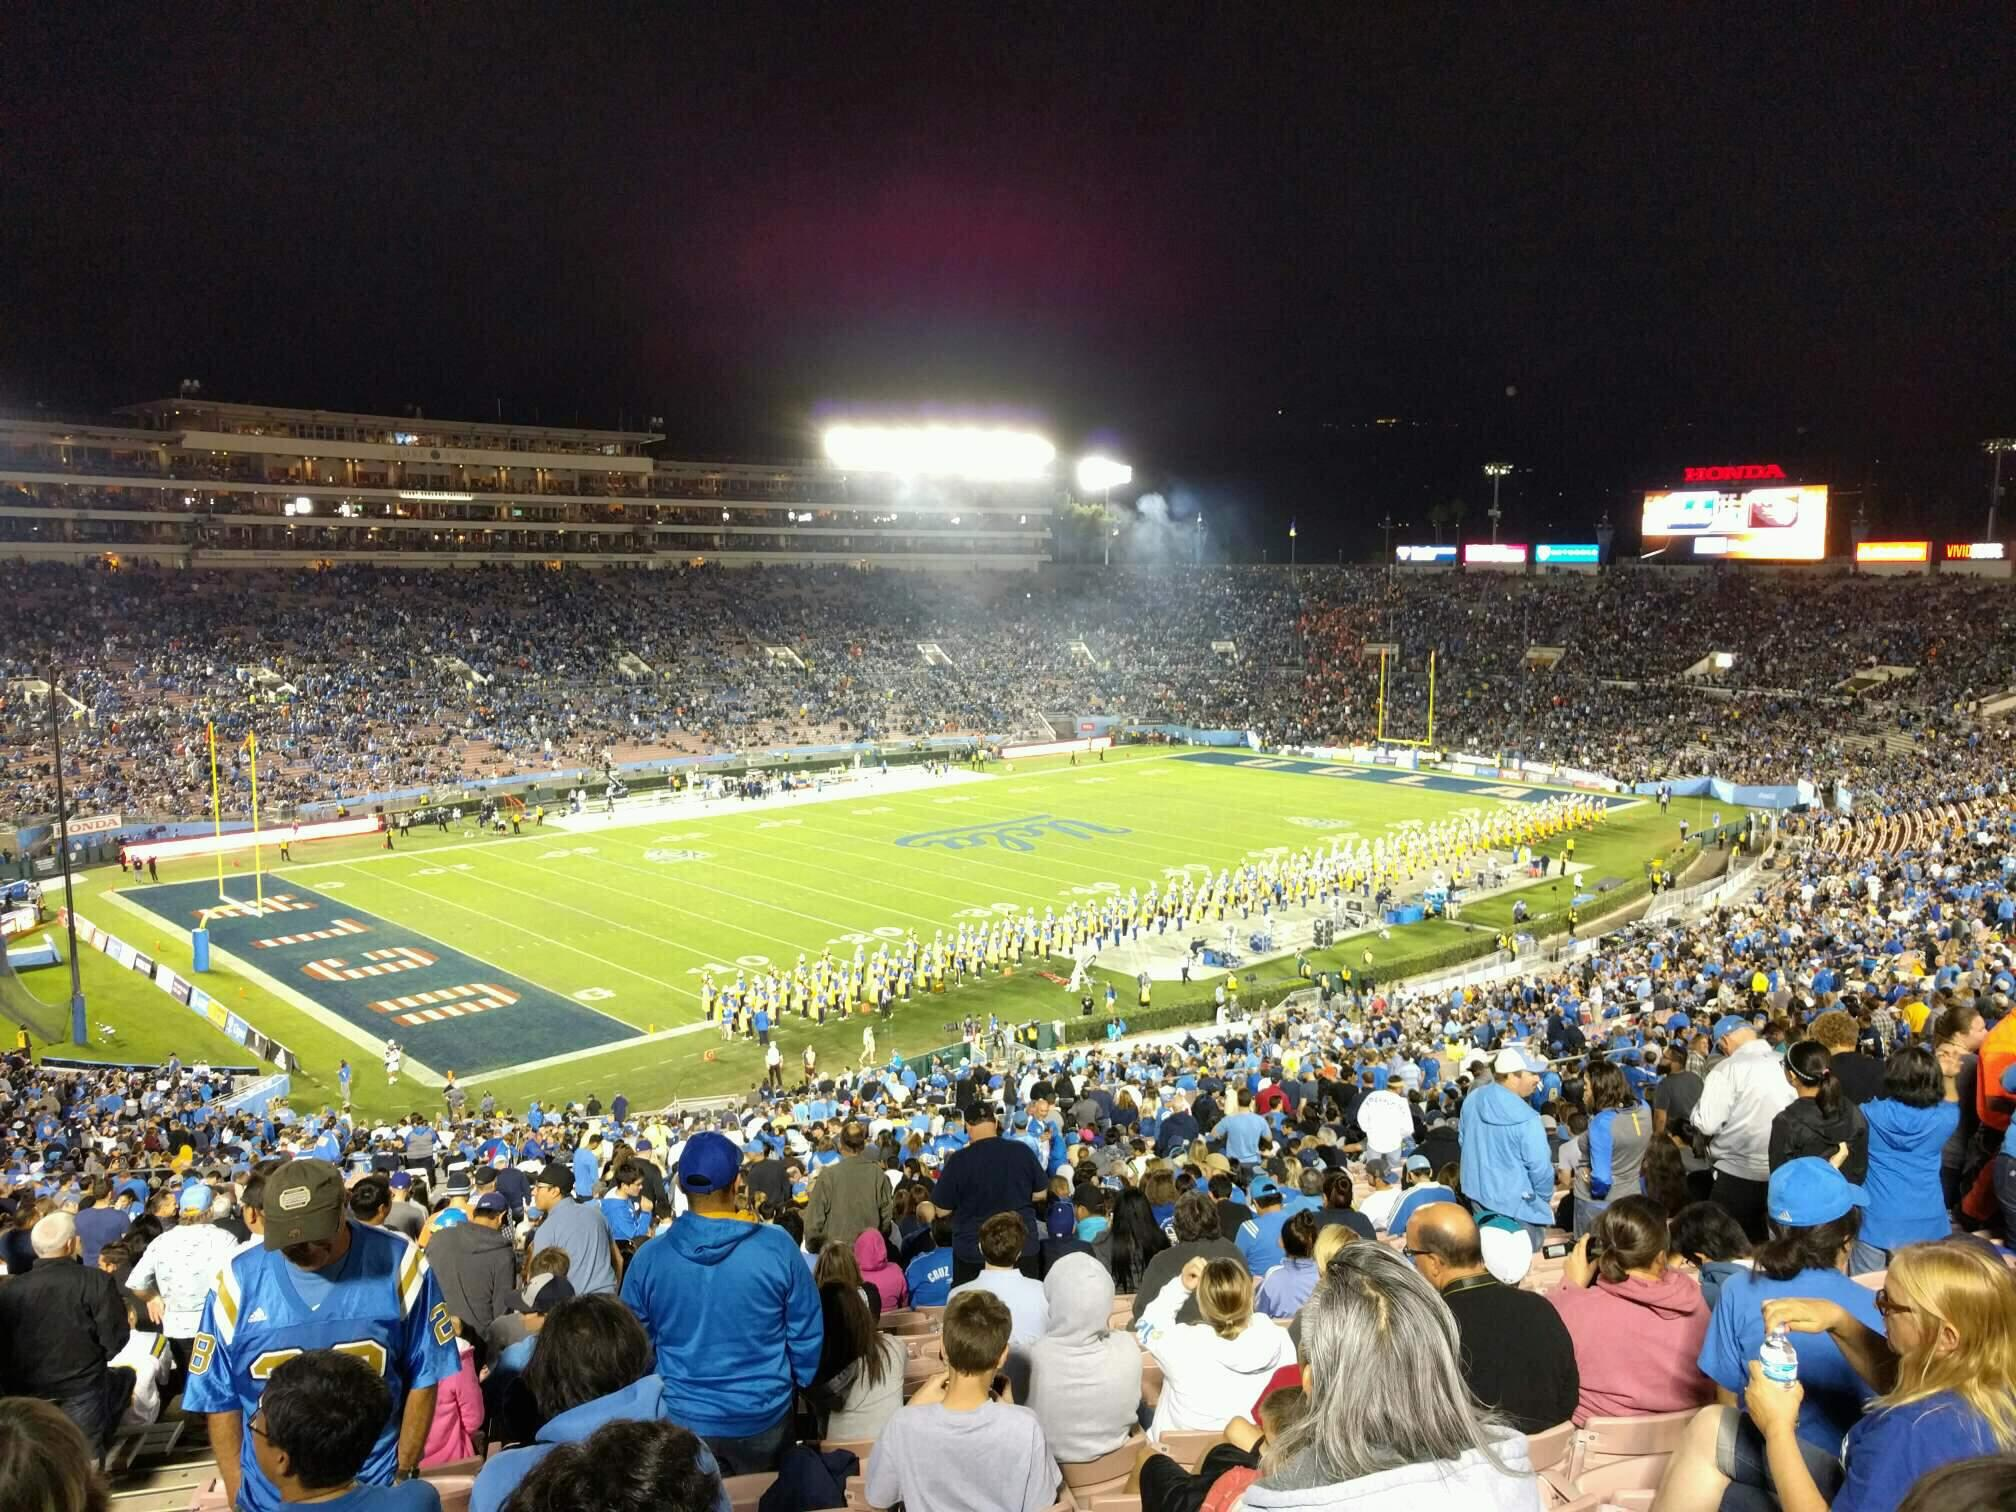 Rose Bowl Section 1-H Row 76 Seat 104